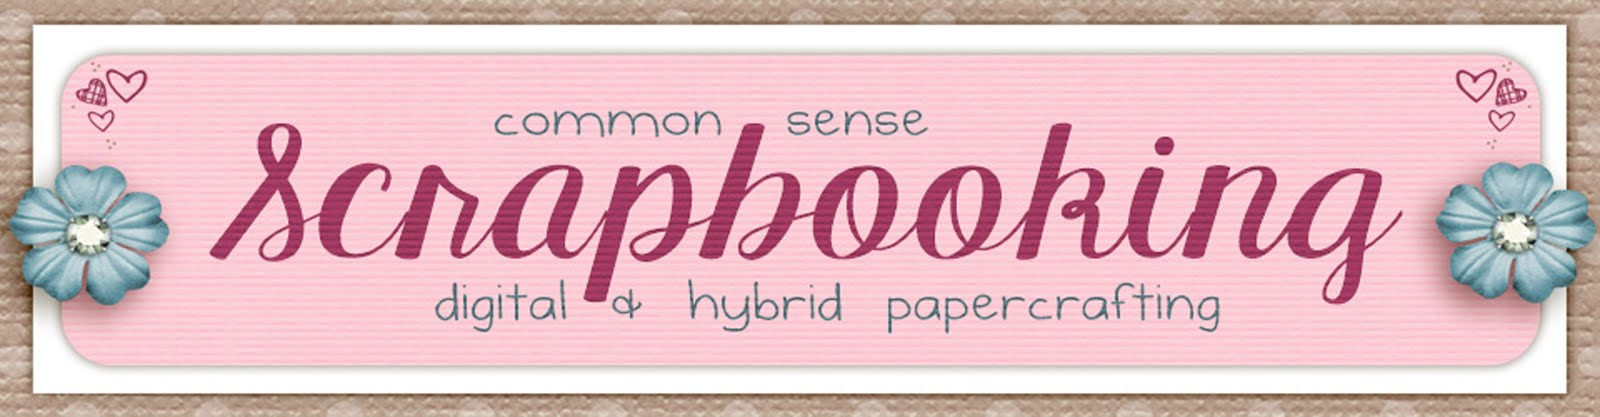 Common Sense Scrapbooking